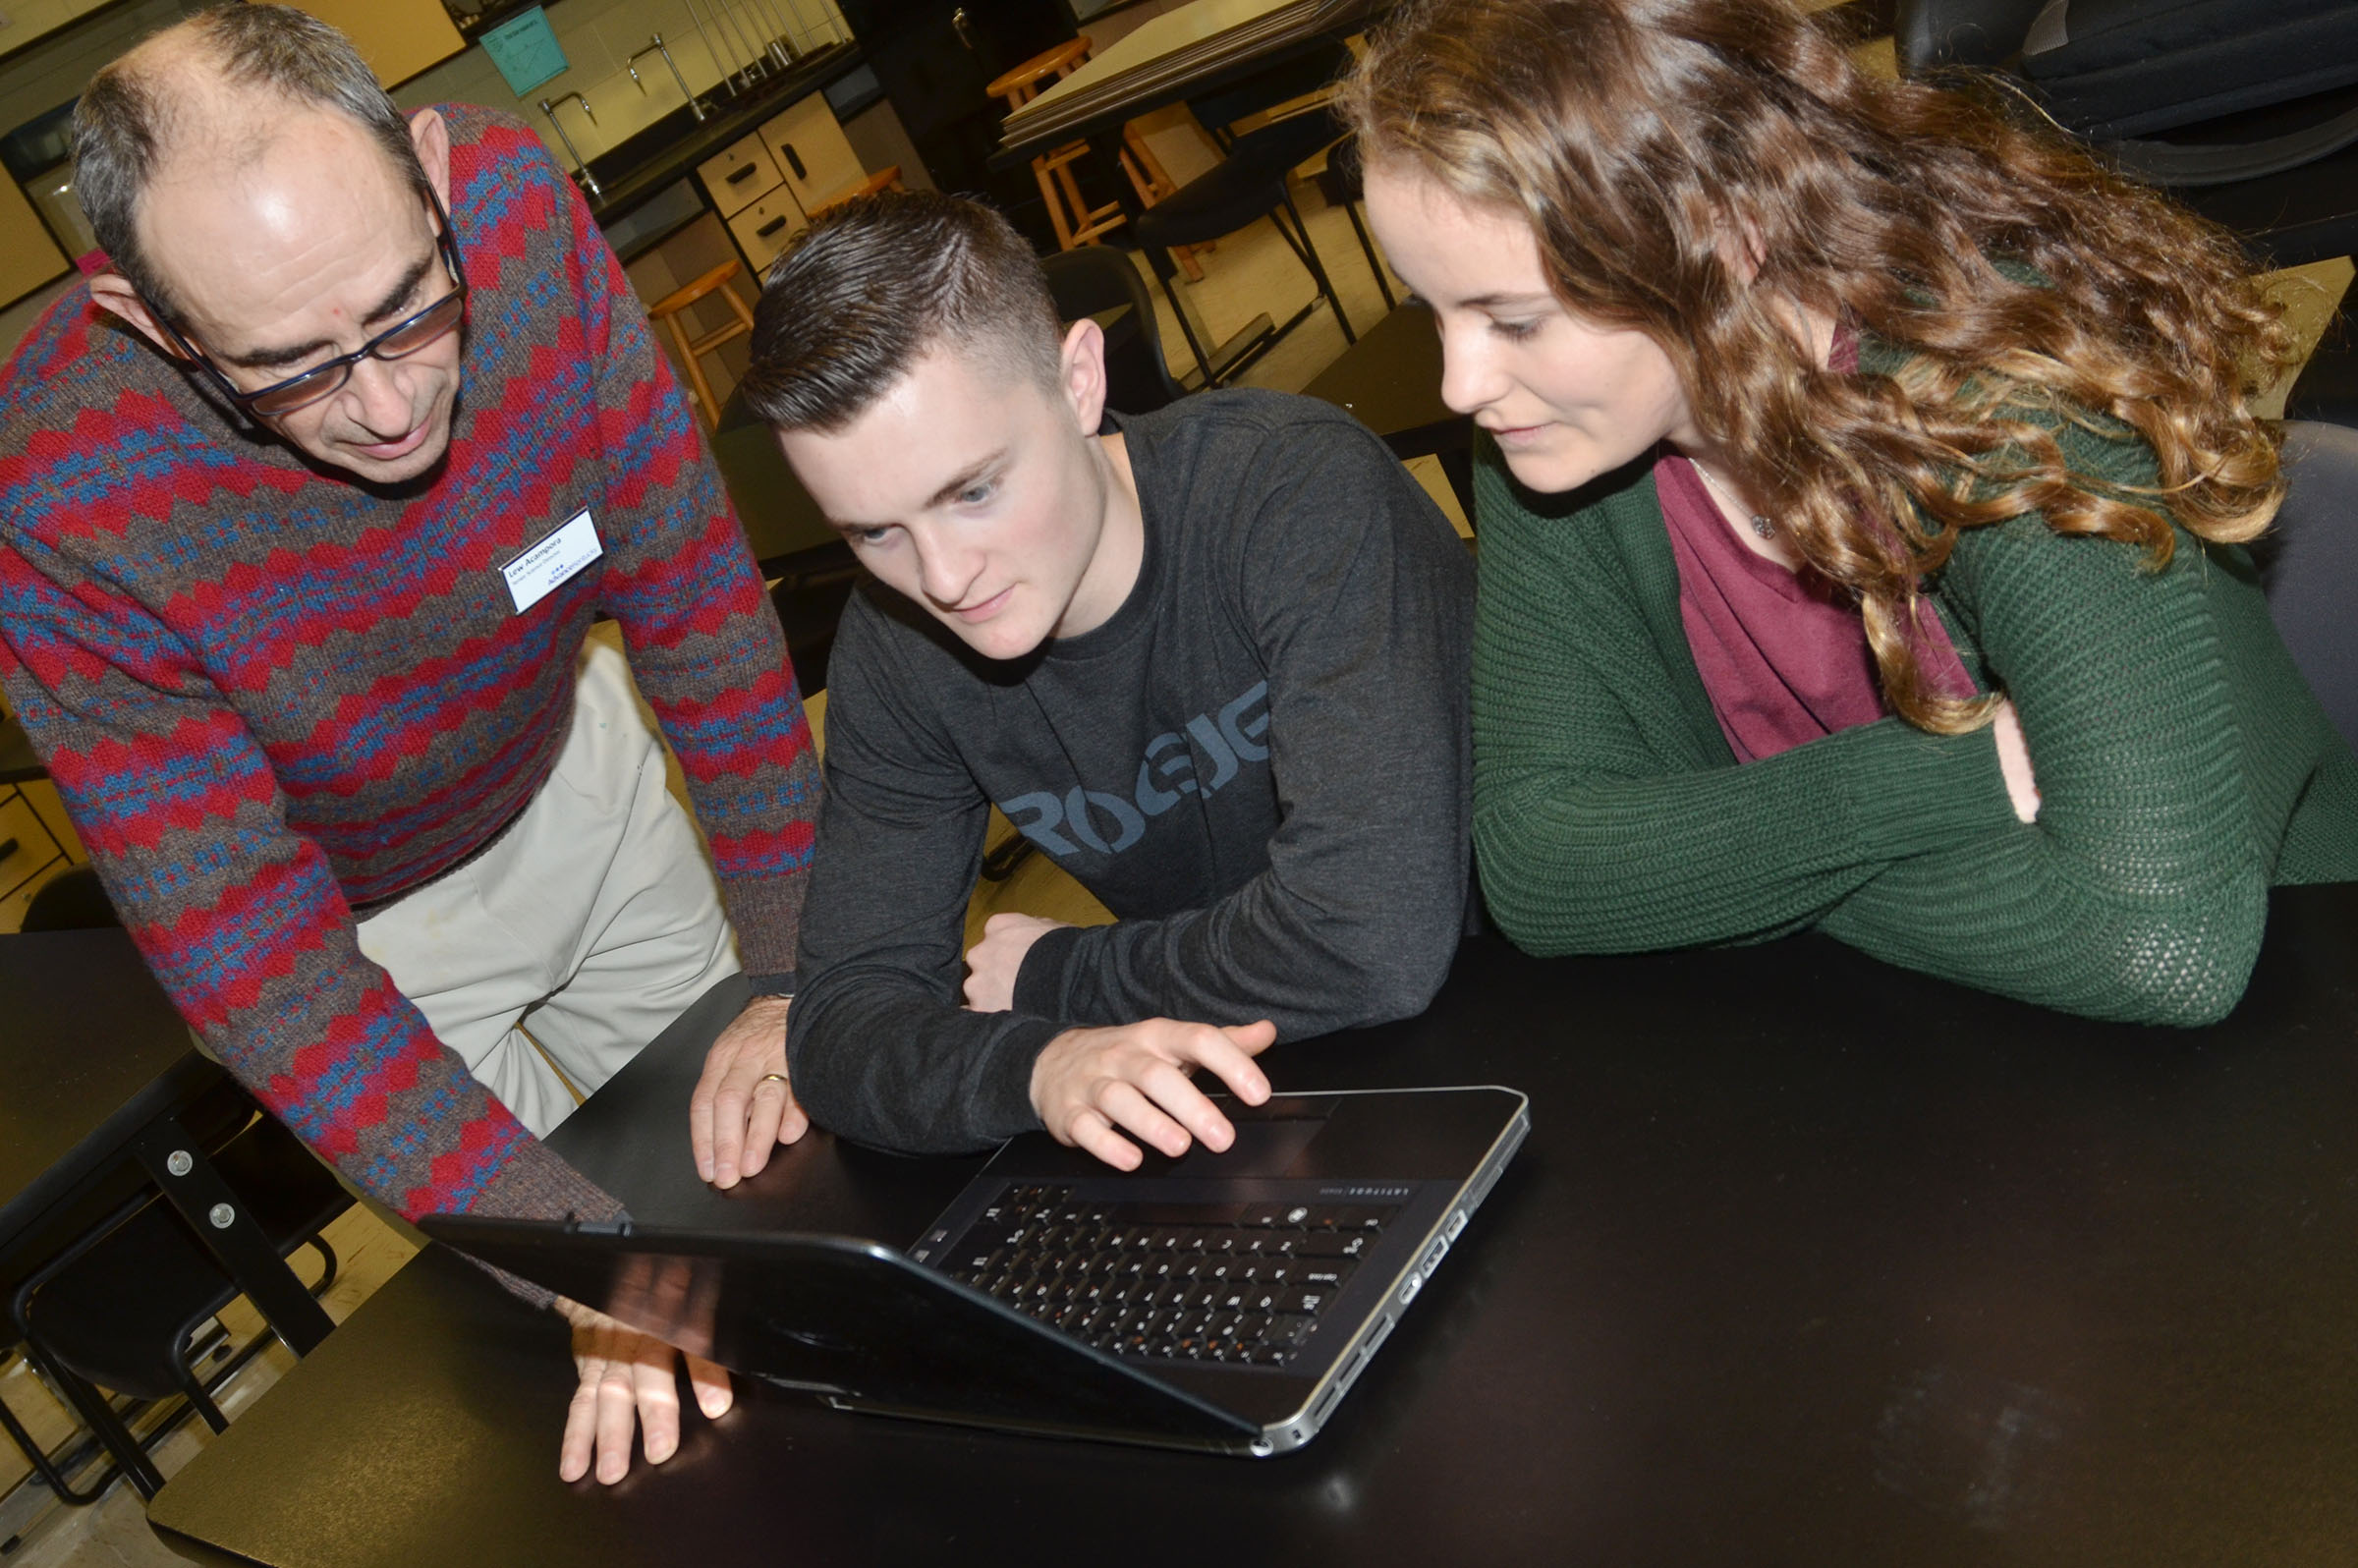 Lew Acampora, senior science director with AdvanceKentucky, helps CHS junior Bryce Richardson and senior Caroline McMahan as they analyze data with the Logger Pro software.